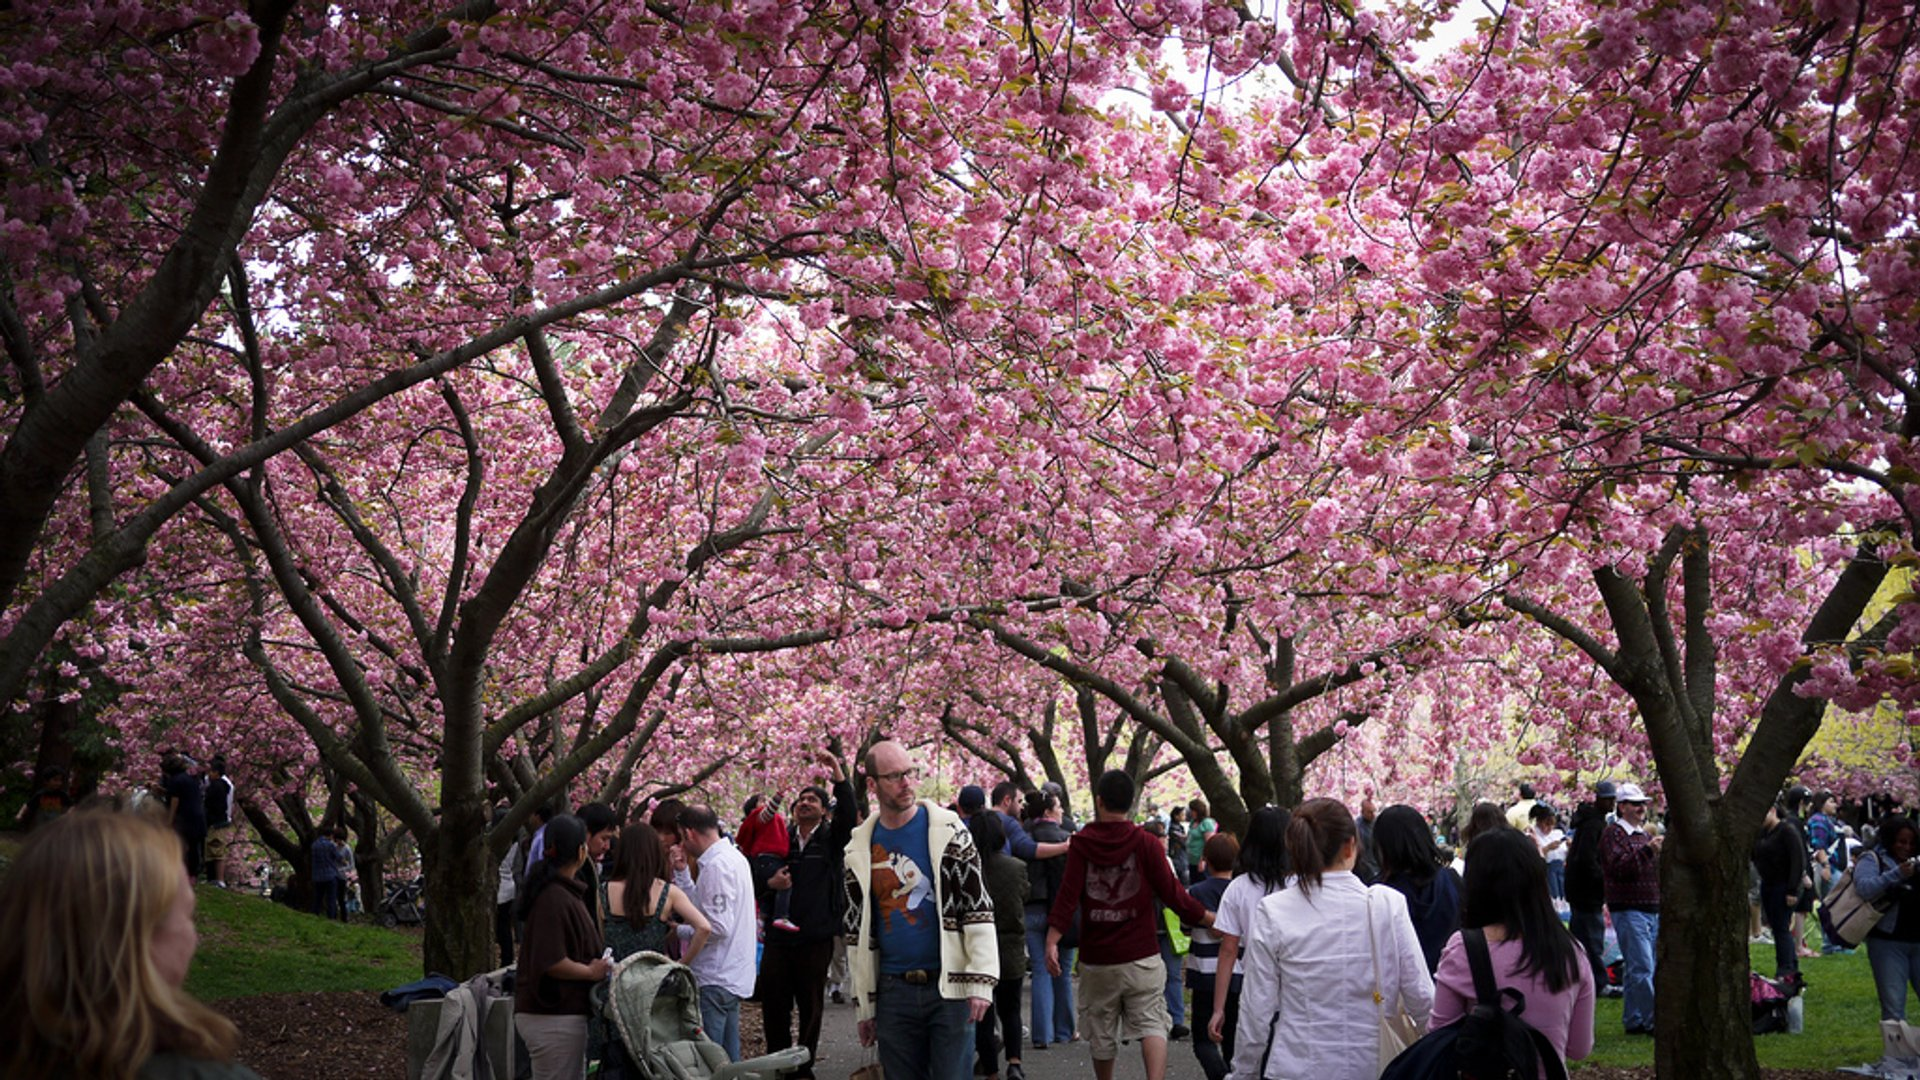 Sakura Matsuri: Cherry Blossom Festival in New York 2020 - Best Time